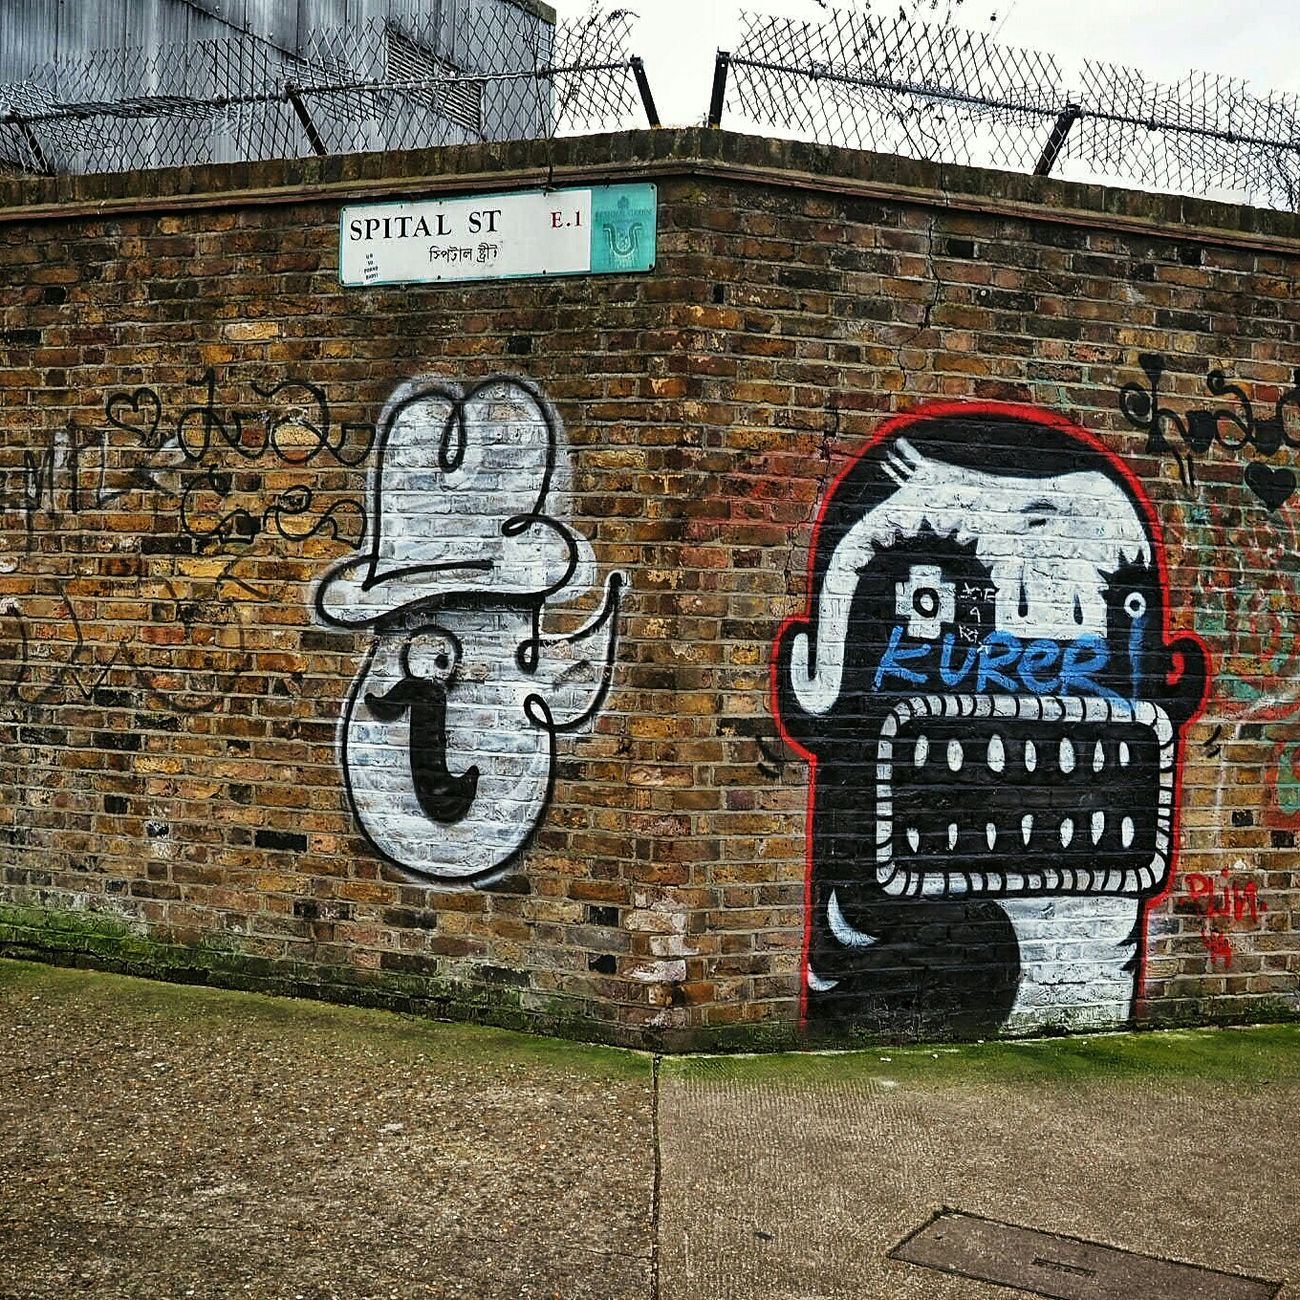 East End Graffiti Graffiti Art Graffiti LdnGraff London East London